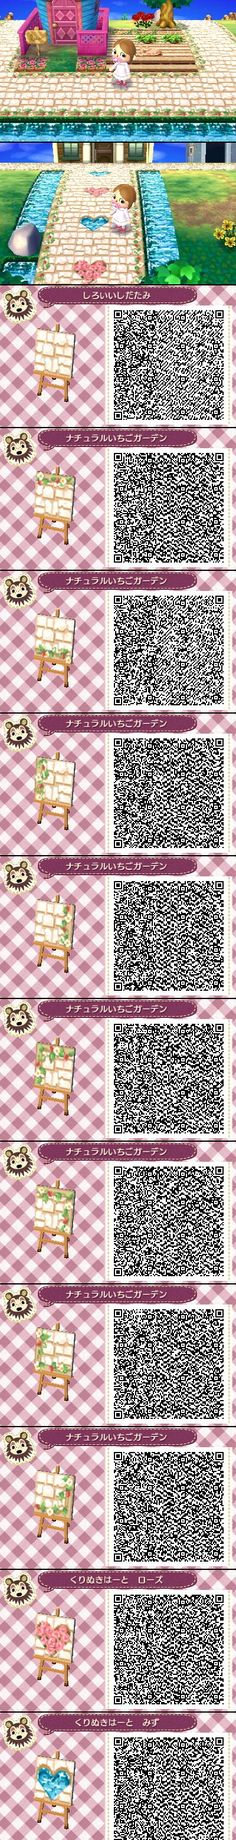 Animal Crossing New Leaf QR codes White stone (click through for source and full images)